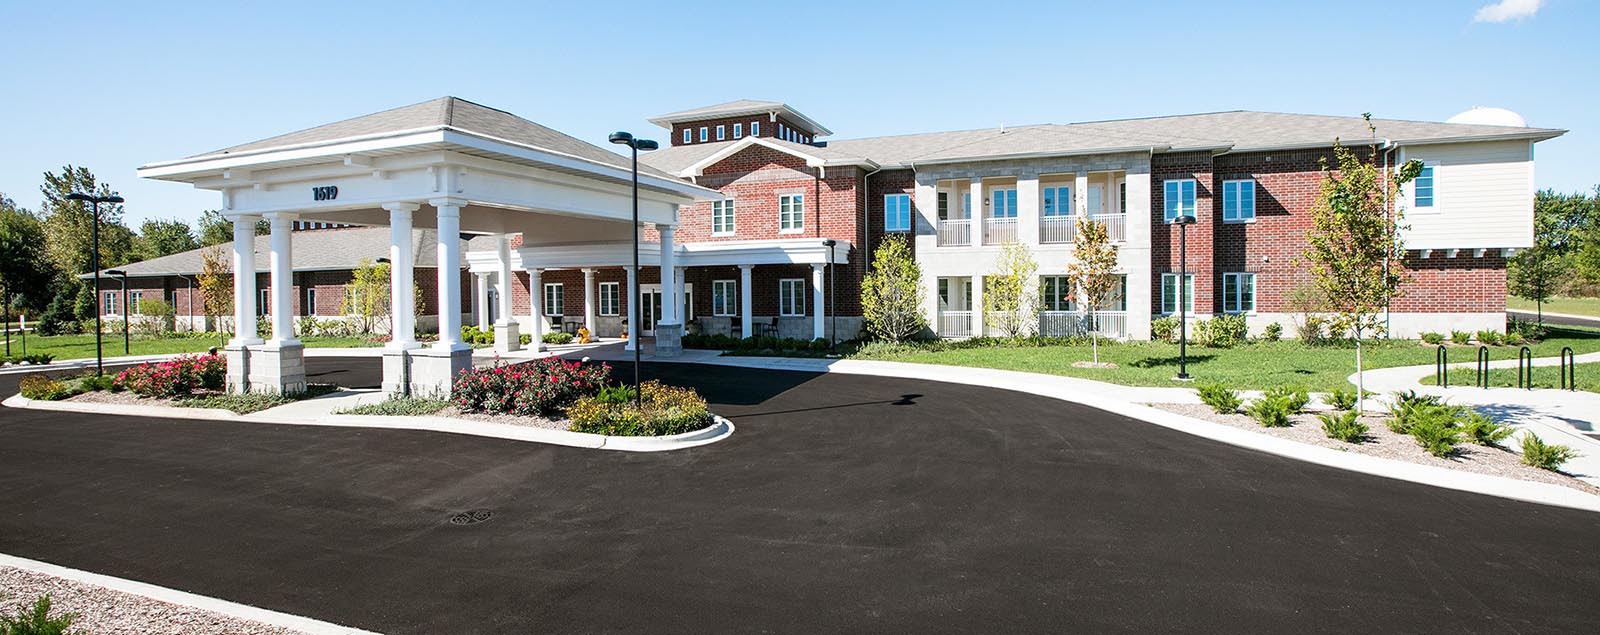 Photo gallery of Senior Living in Naperville